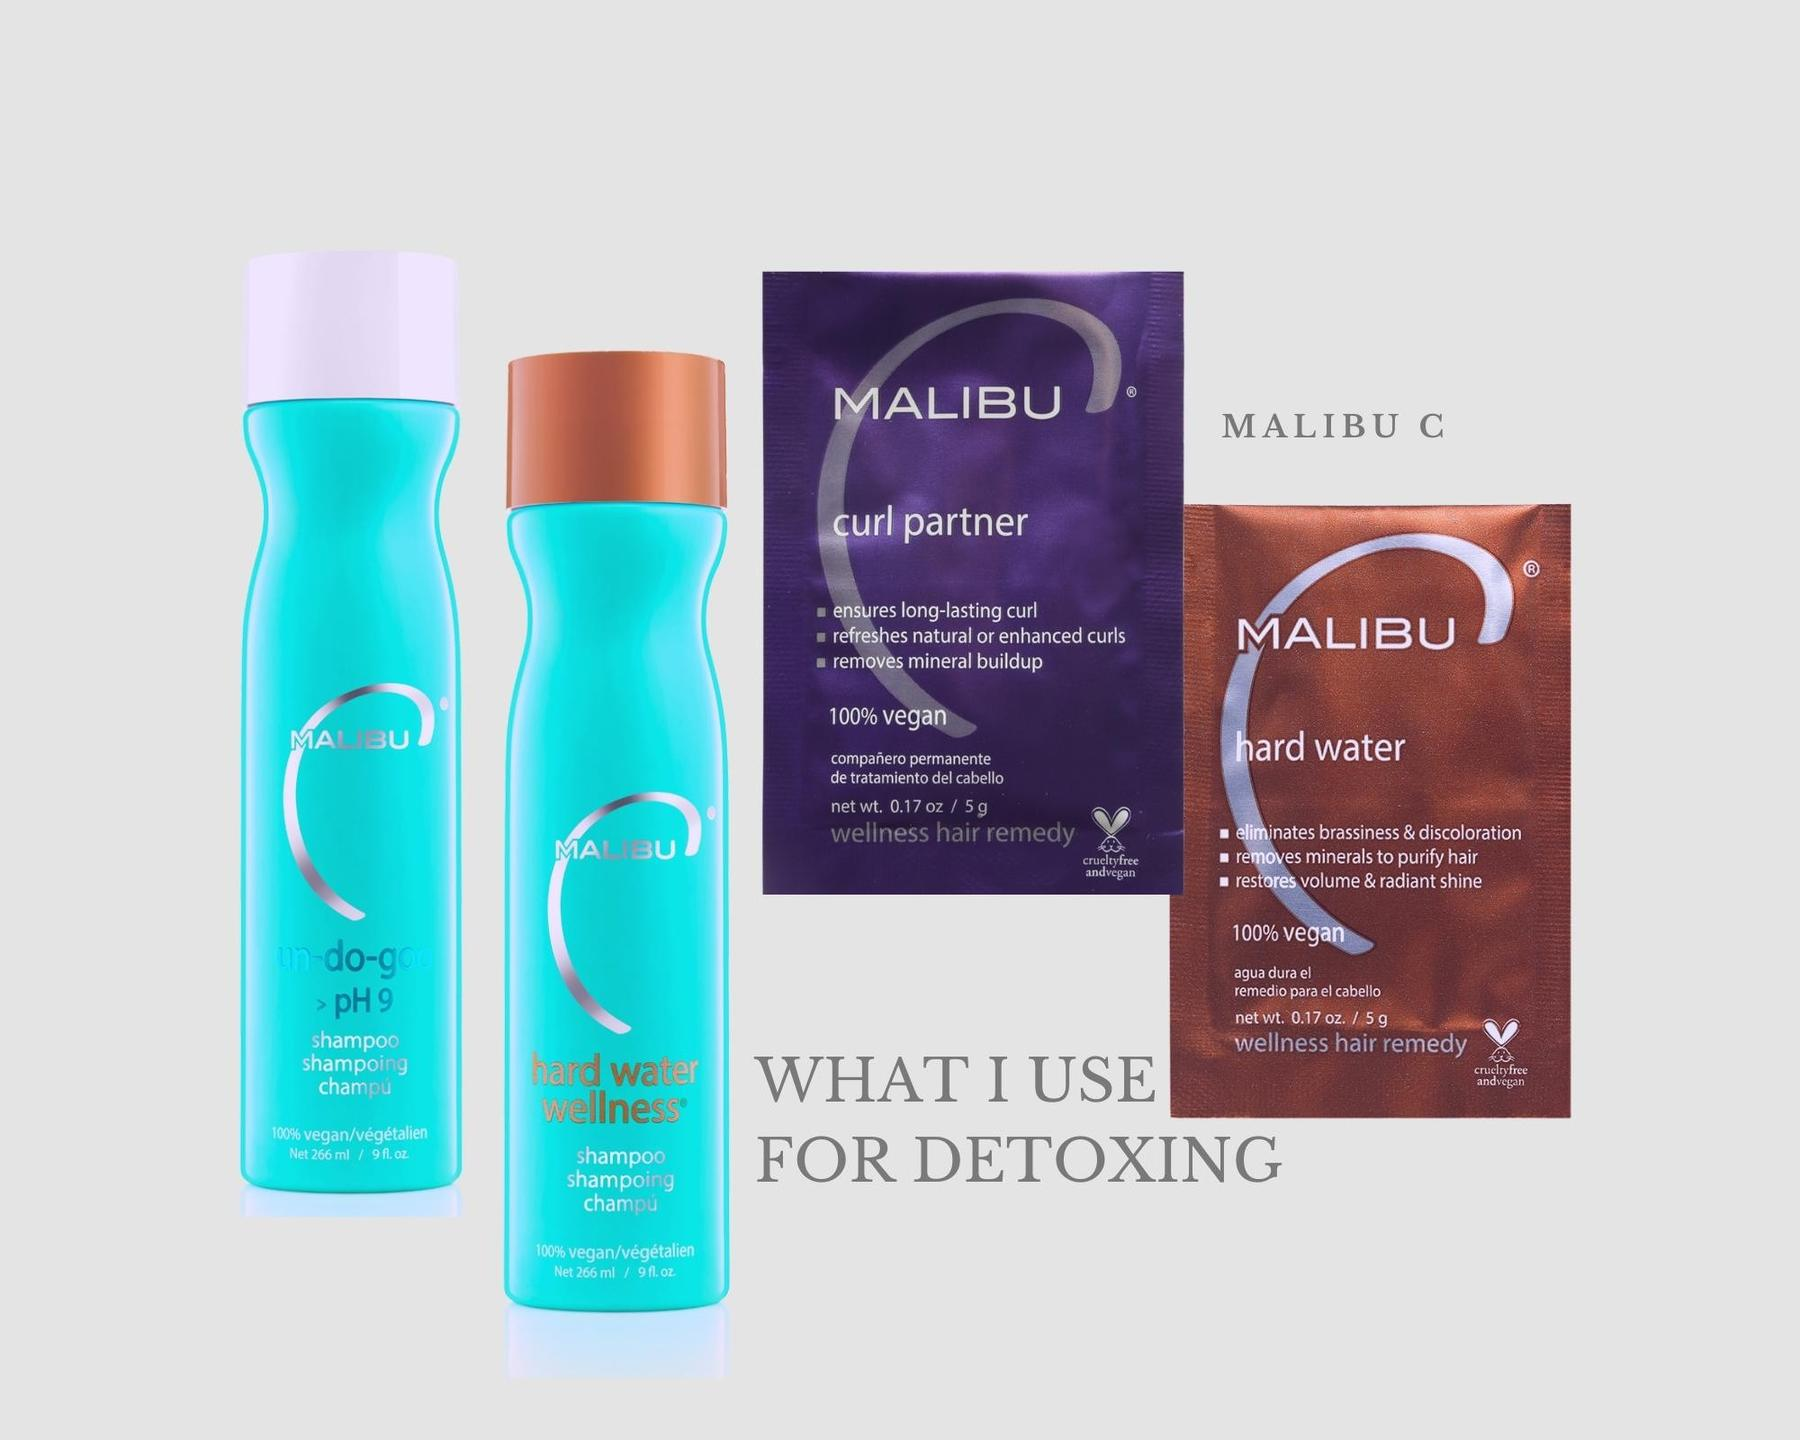 Malibu C detoxing products